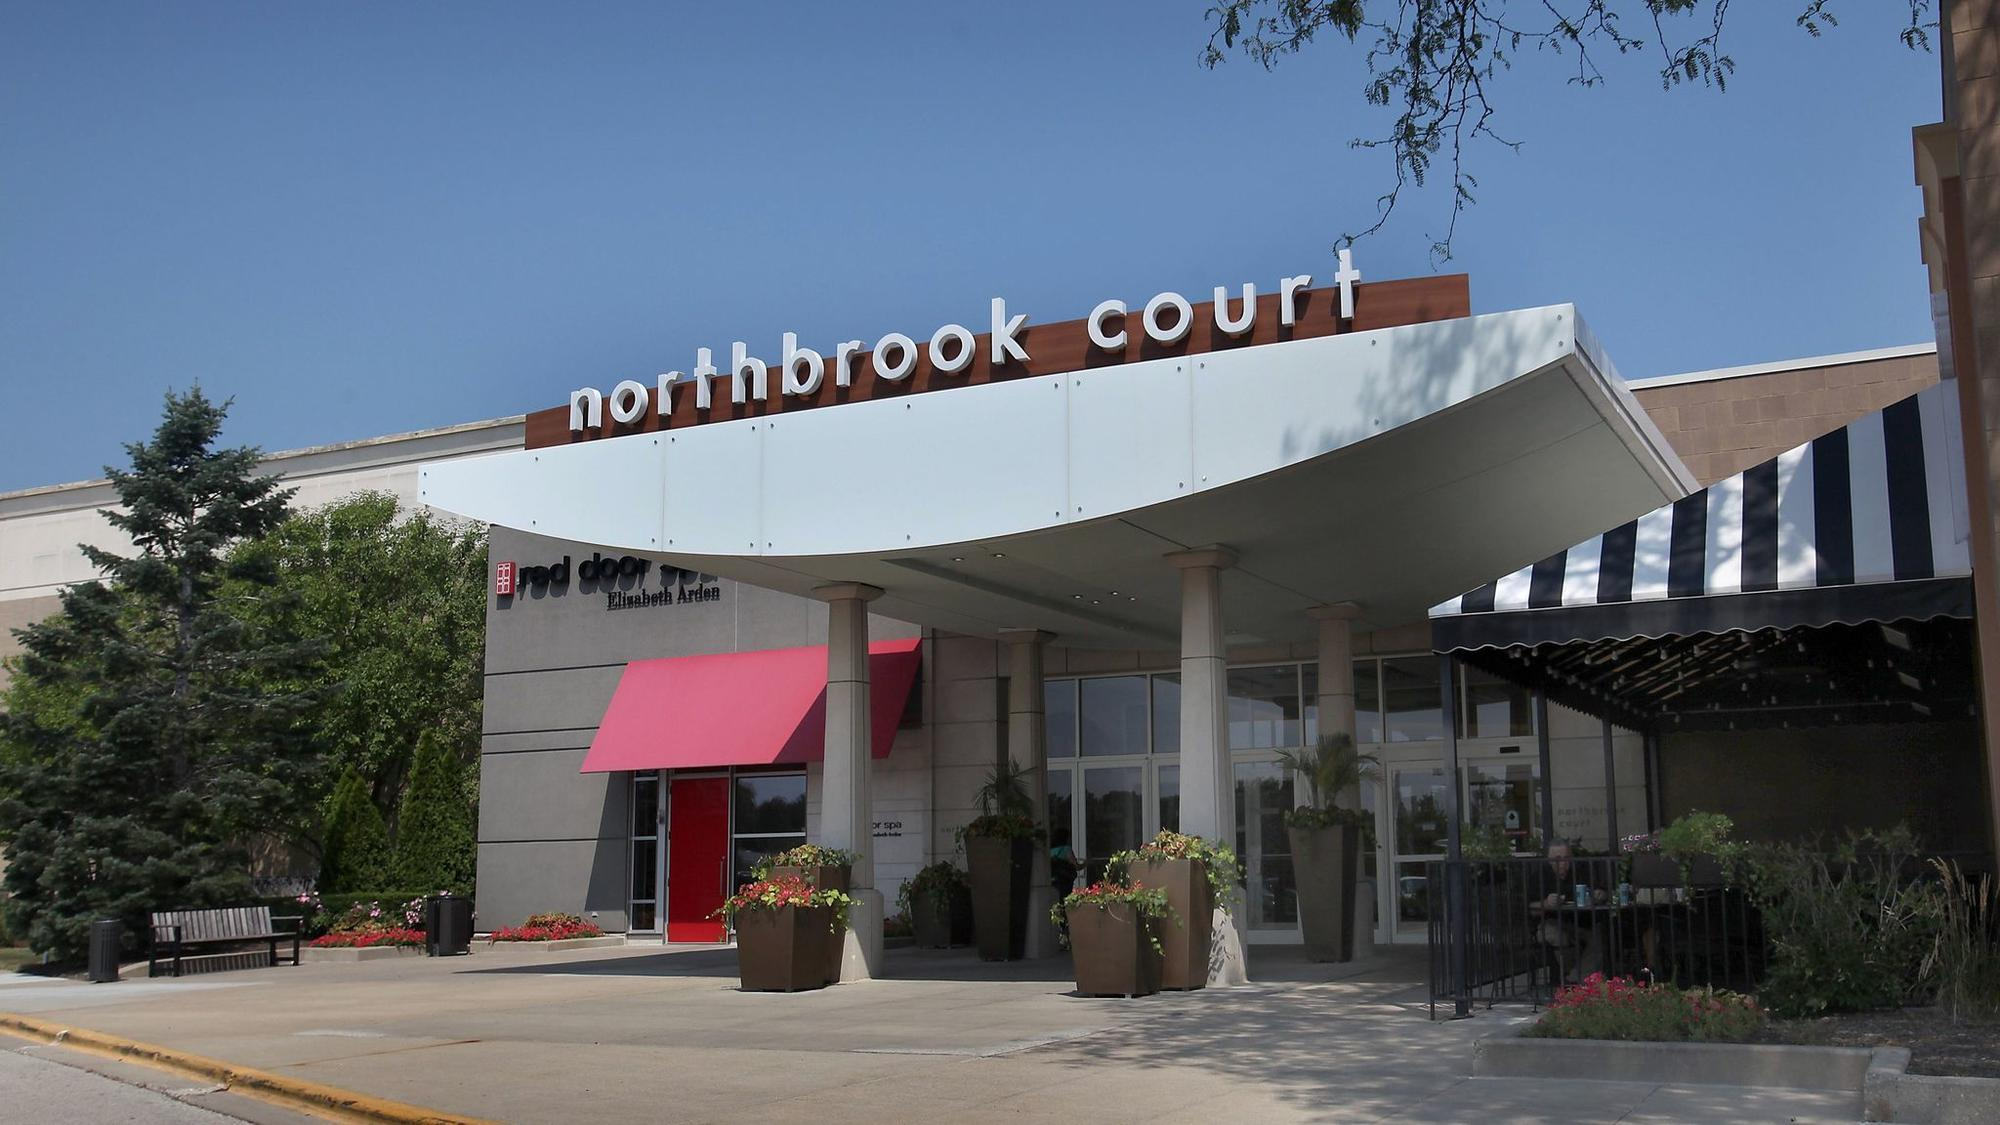 Macy 39 s sells northbrook court space to shopping center for Northbrook building department